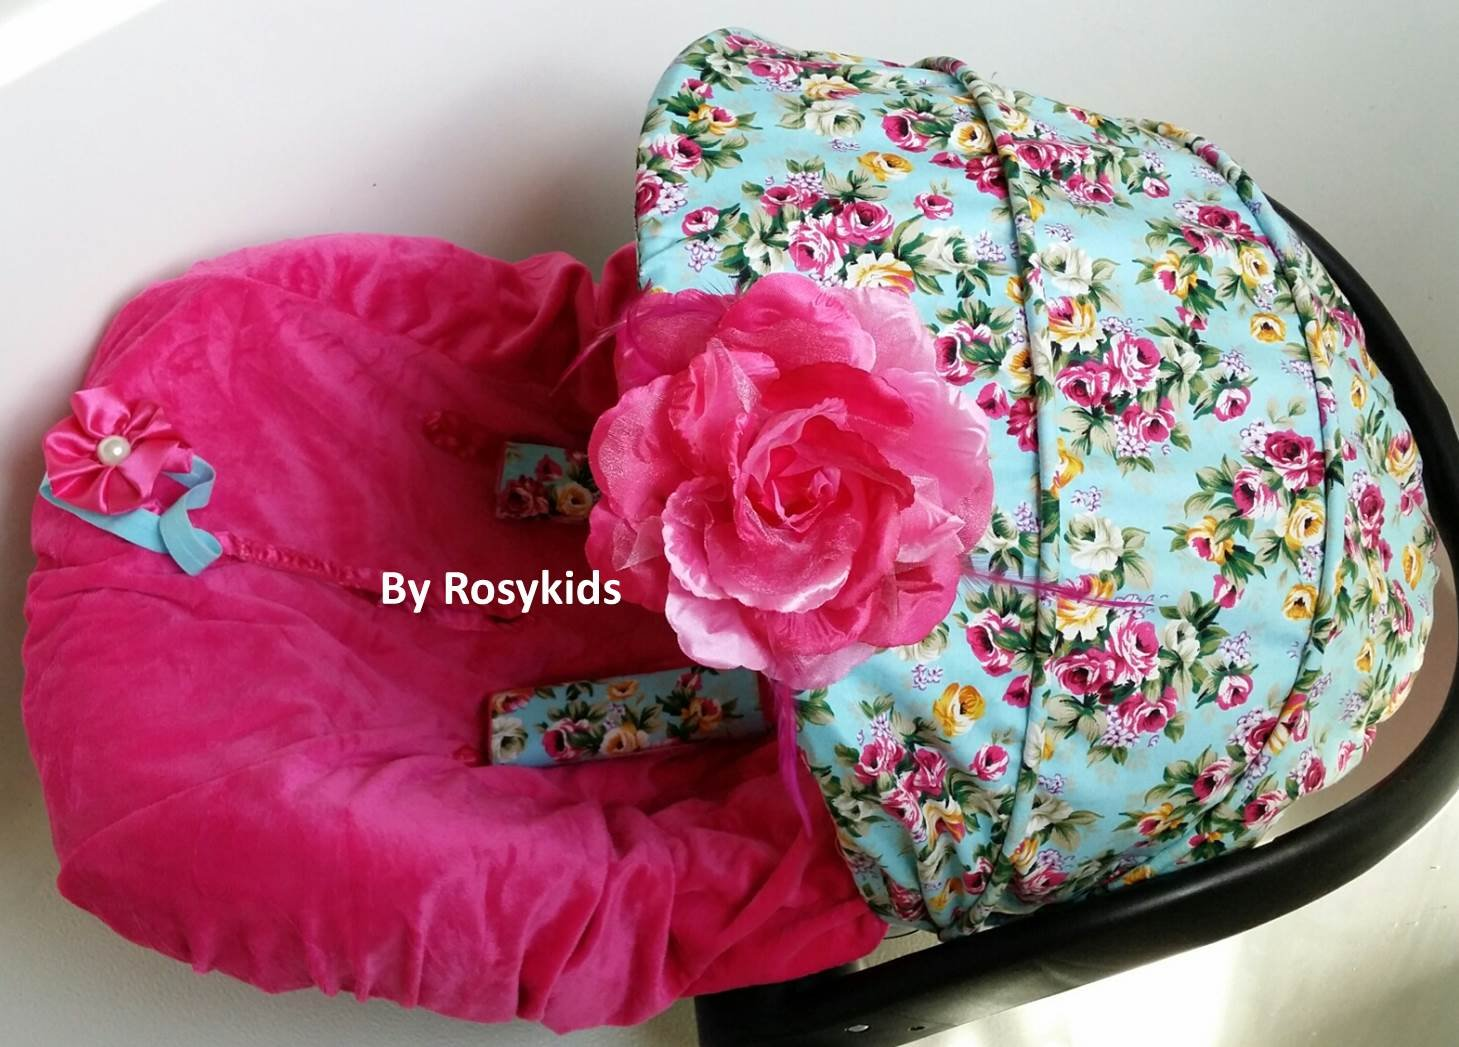 Amazon.com Infant Carseat Canopy Cover 3 Pc Whole Caboodle Baby Car Seat Cover Kit Floral Print C010101 Baby : baby canopy cover - memphite.com